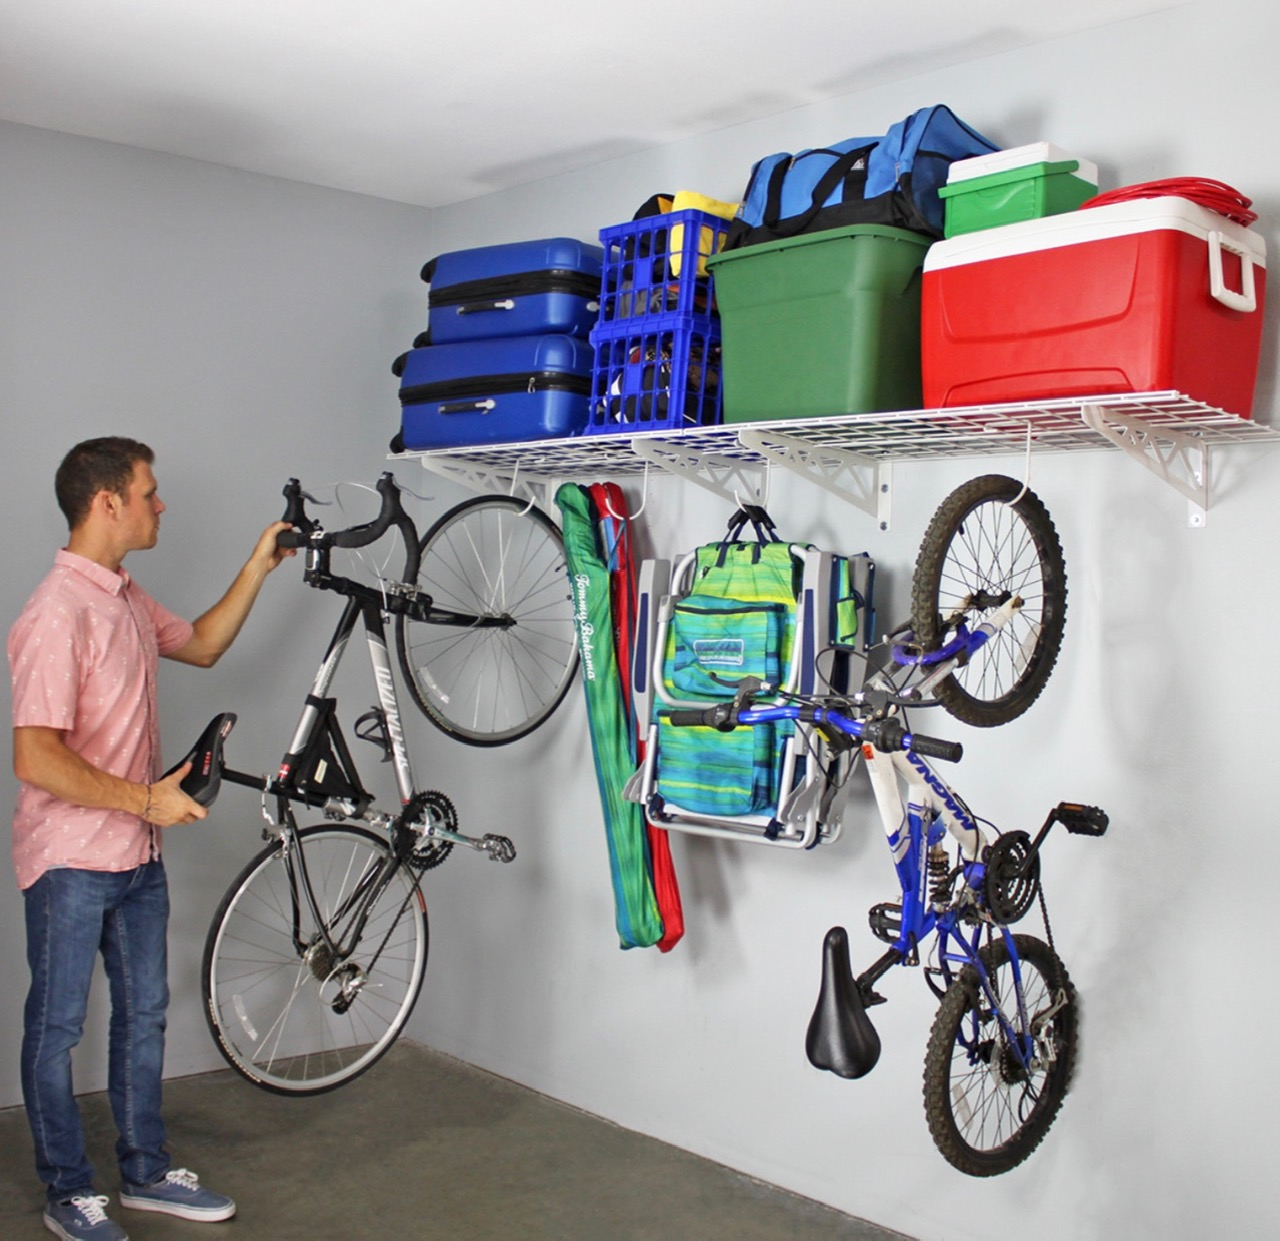 All shelves have a 250 pound weight capacity.